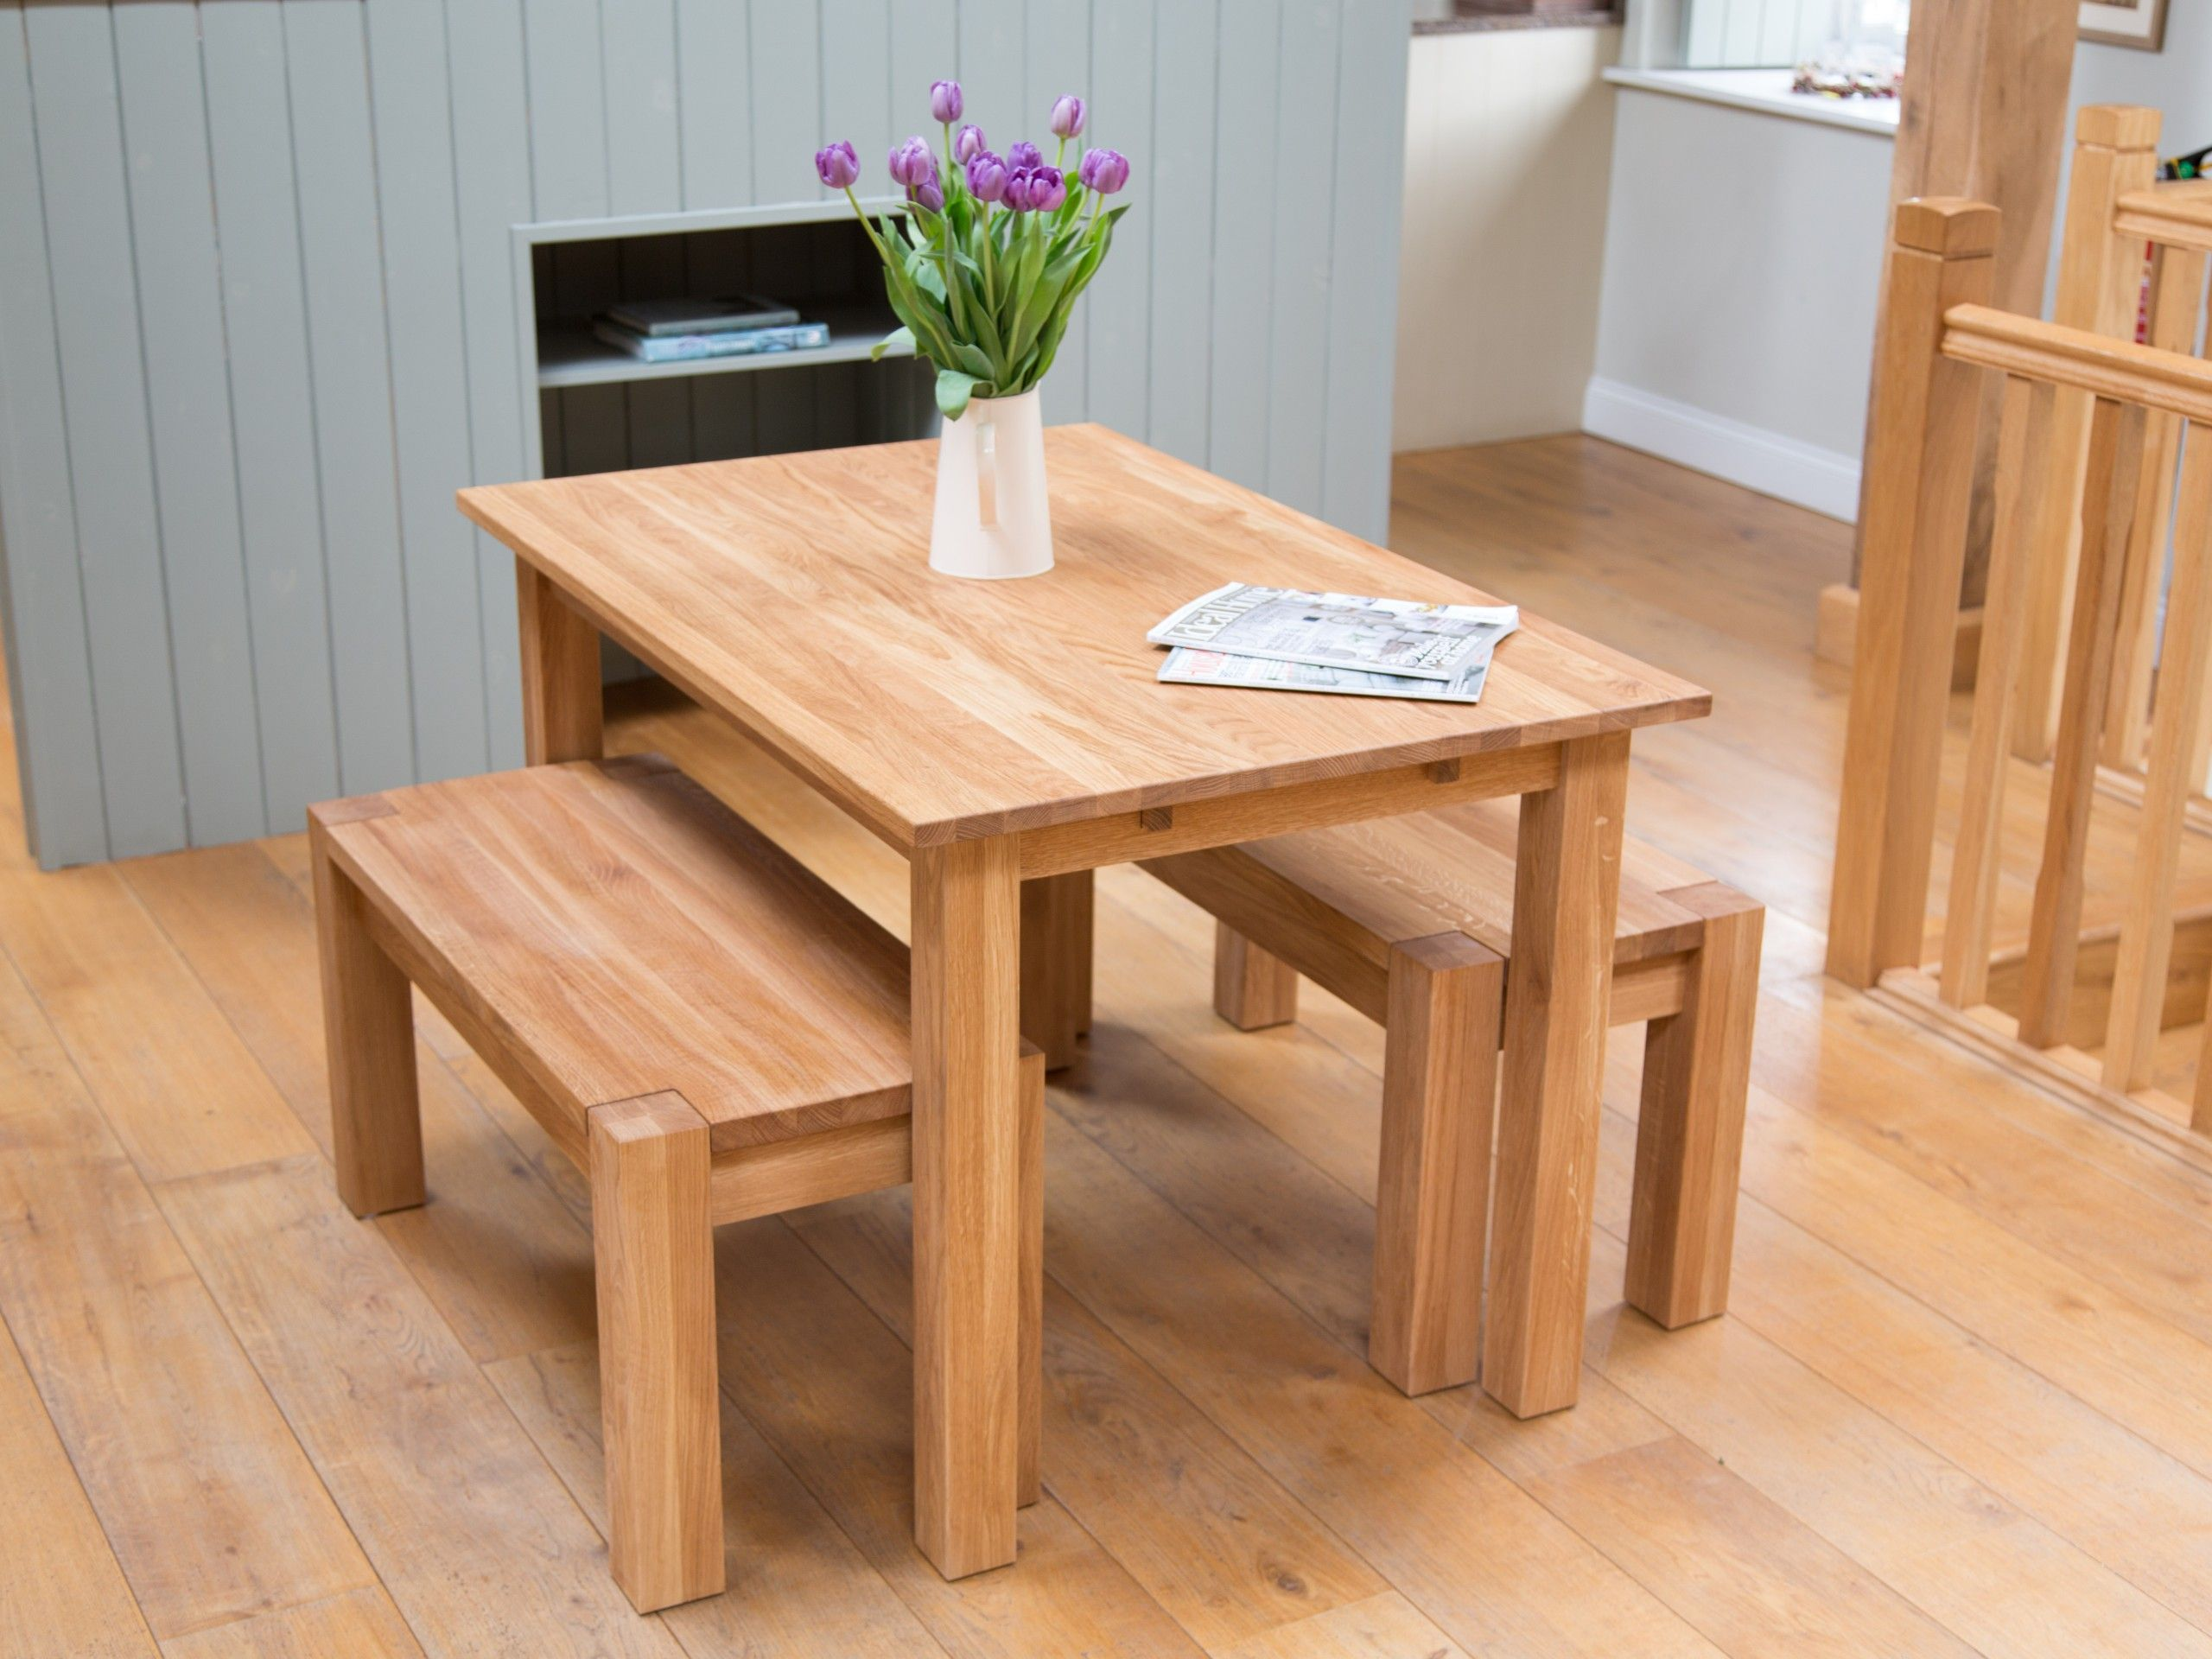 Oak Table And Bench Set From Top Furniture Ltd Dining Set Tables